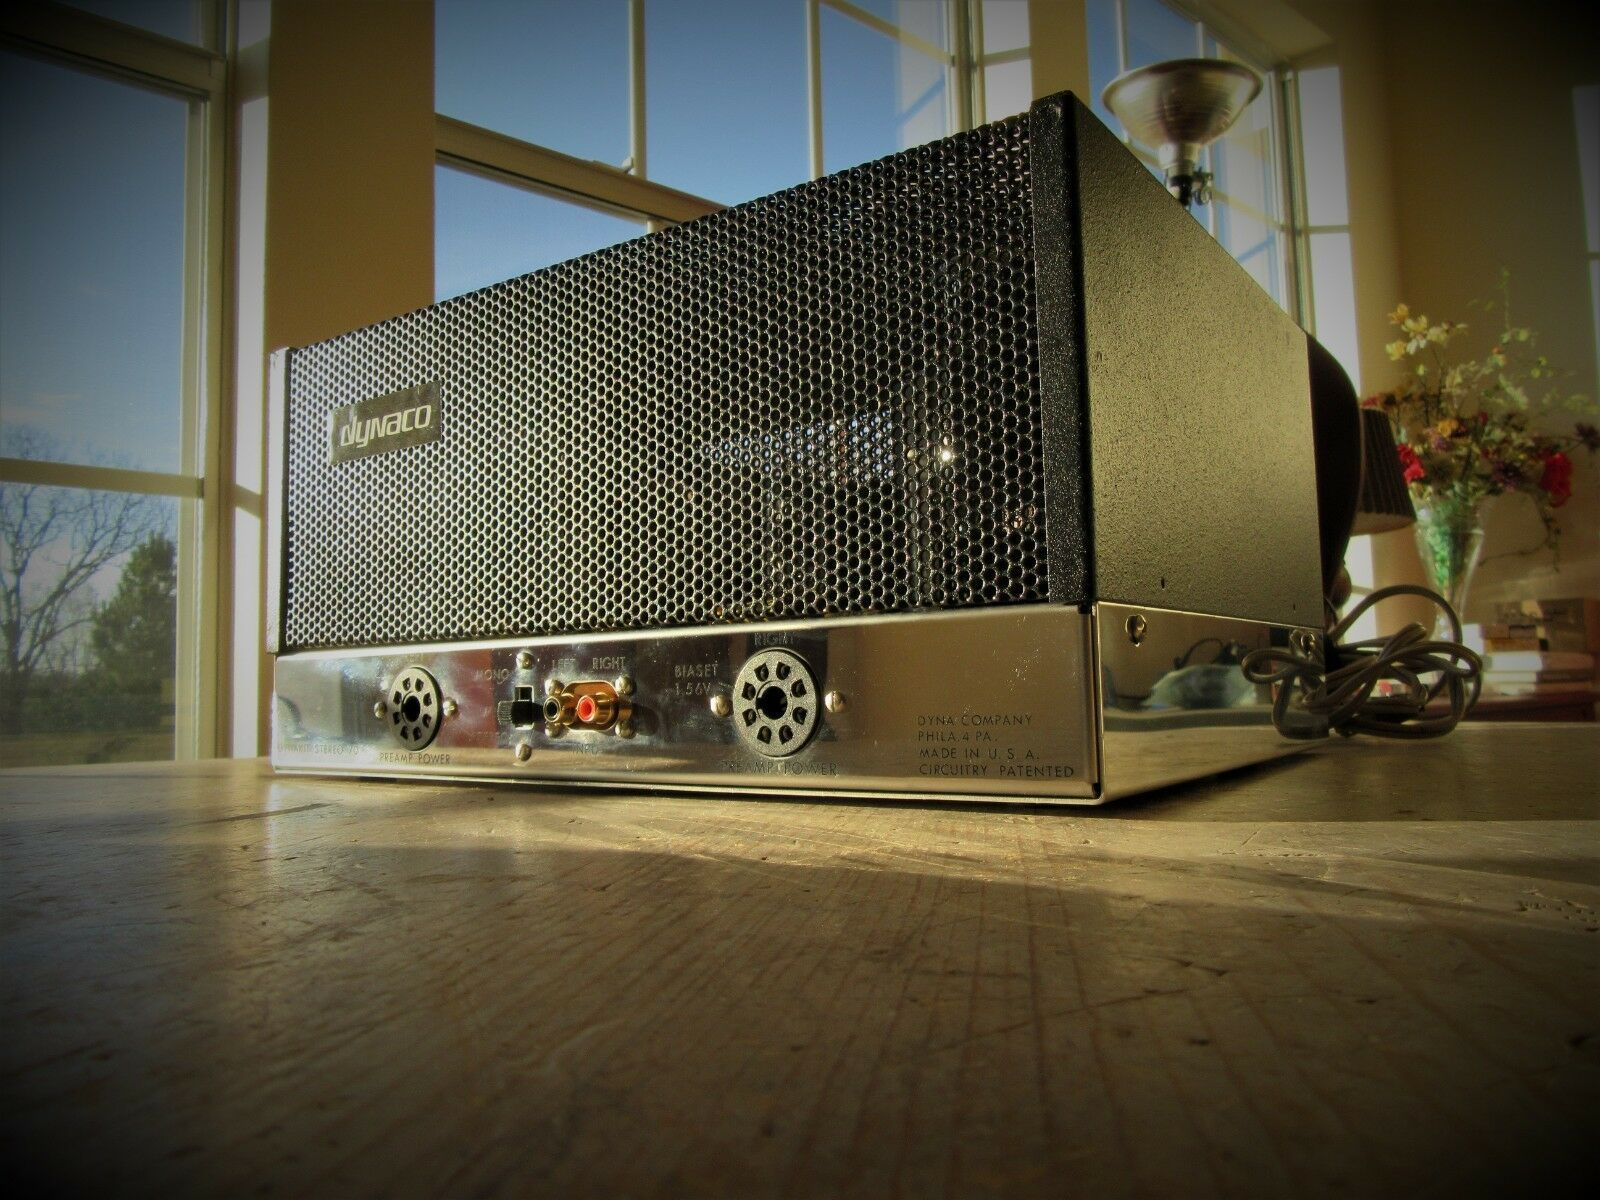 New Dynaco ST-70 Stereo Tube Amp - Built with Vintage Dynaco